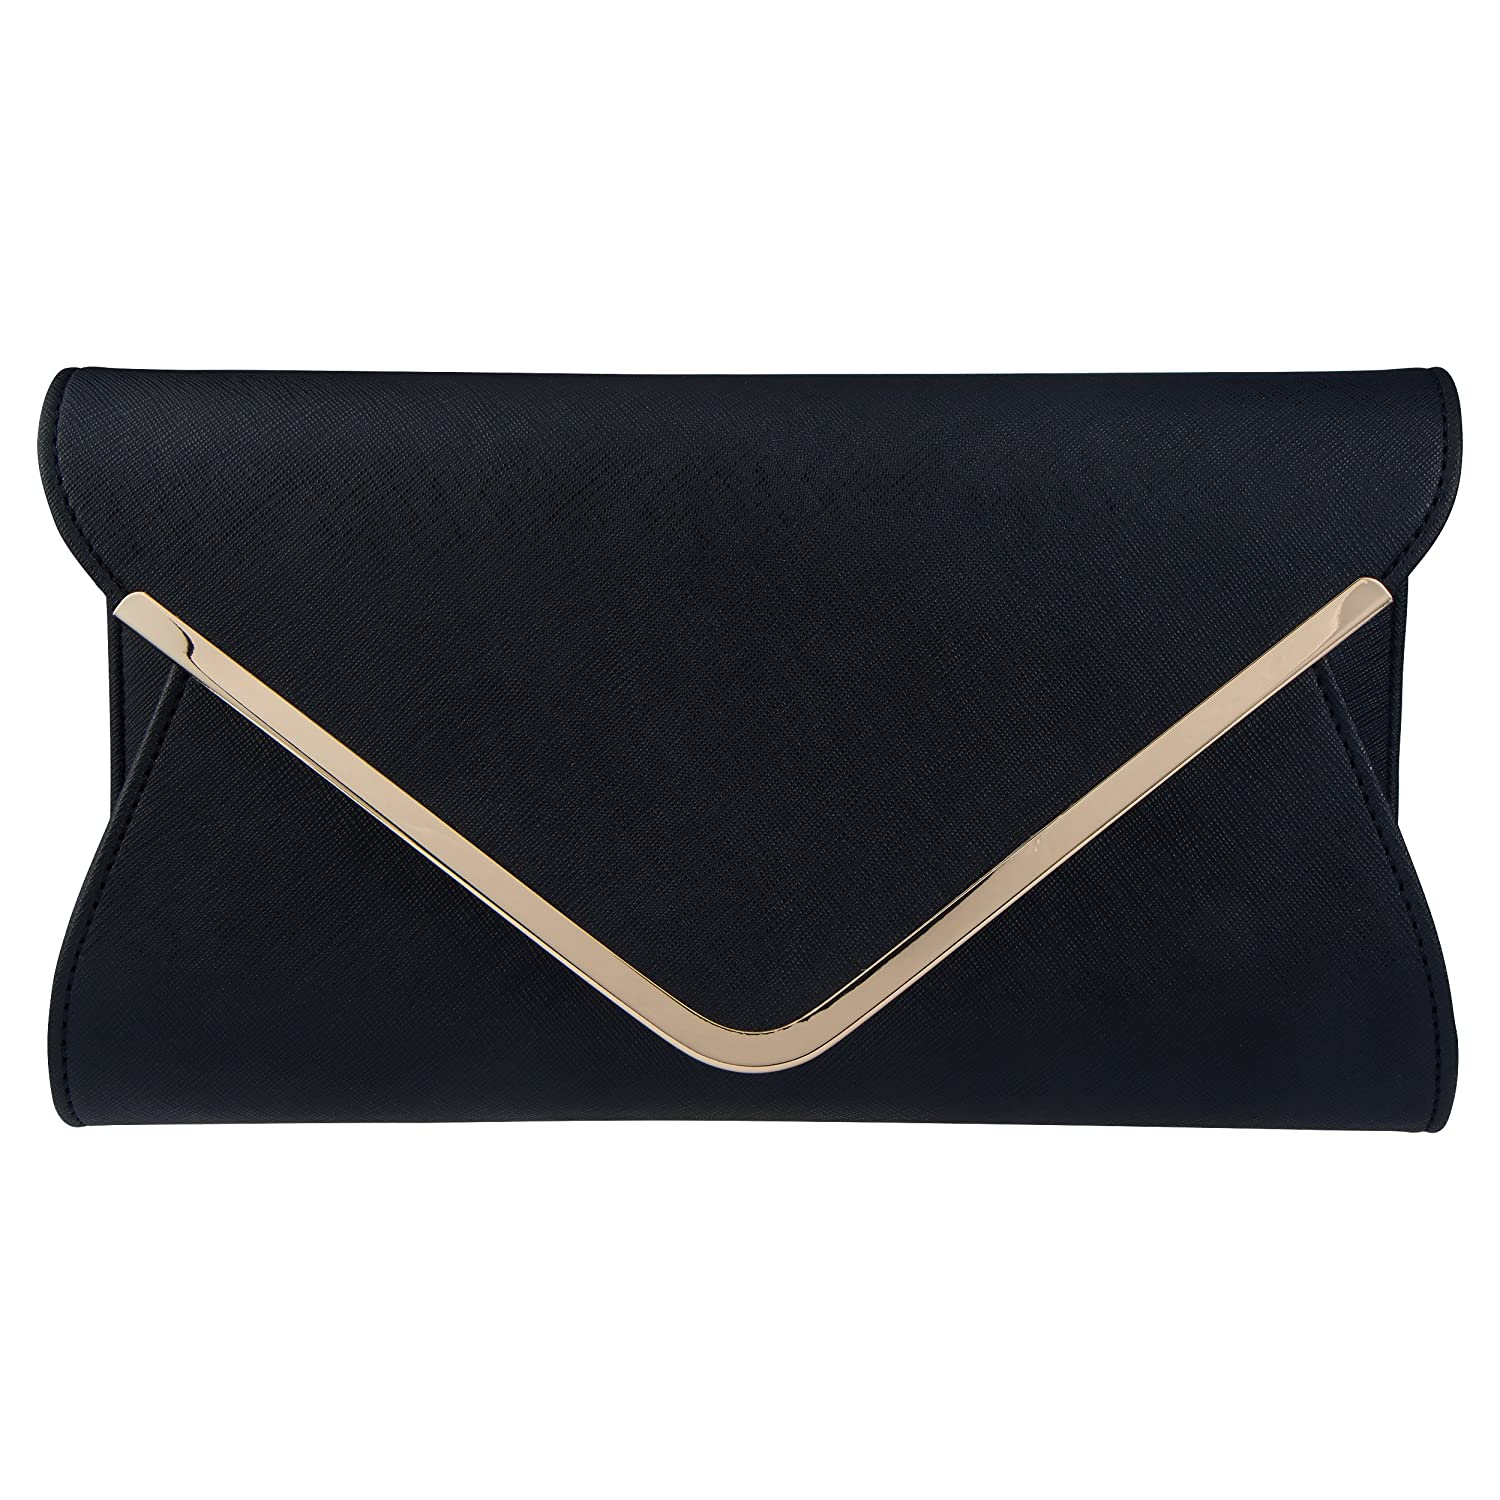 7ece0e1f83bfb Amazon.com: Bagood Leather Envelope Clutches Bag for Women Evening Handbags  Shoulder Bags: Shoes